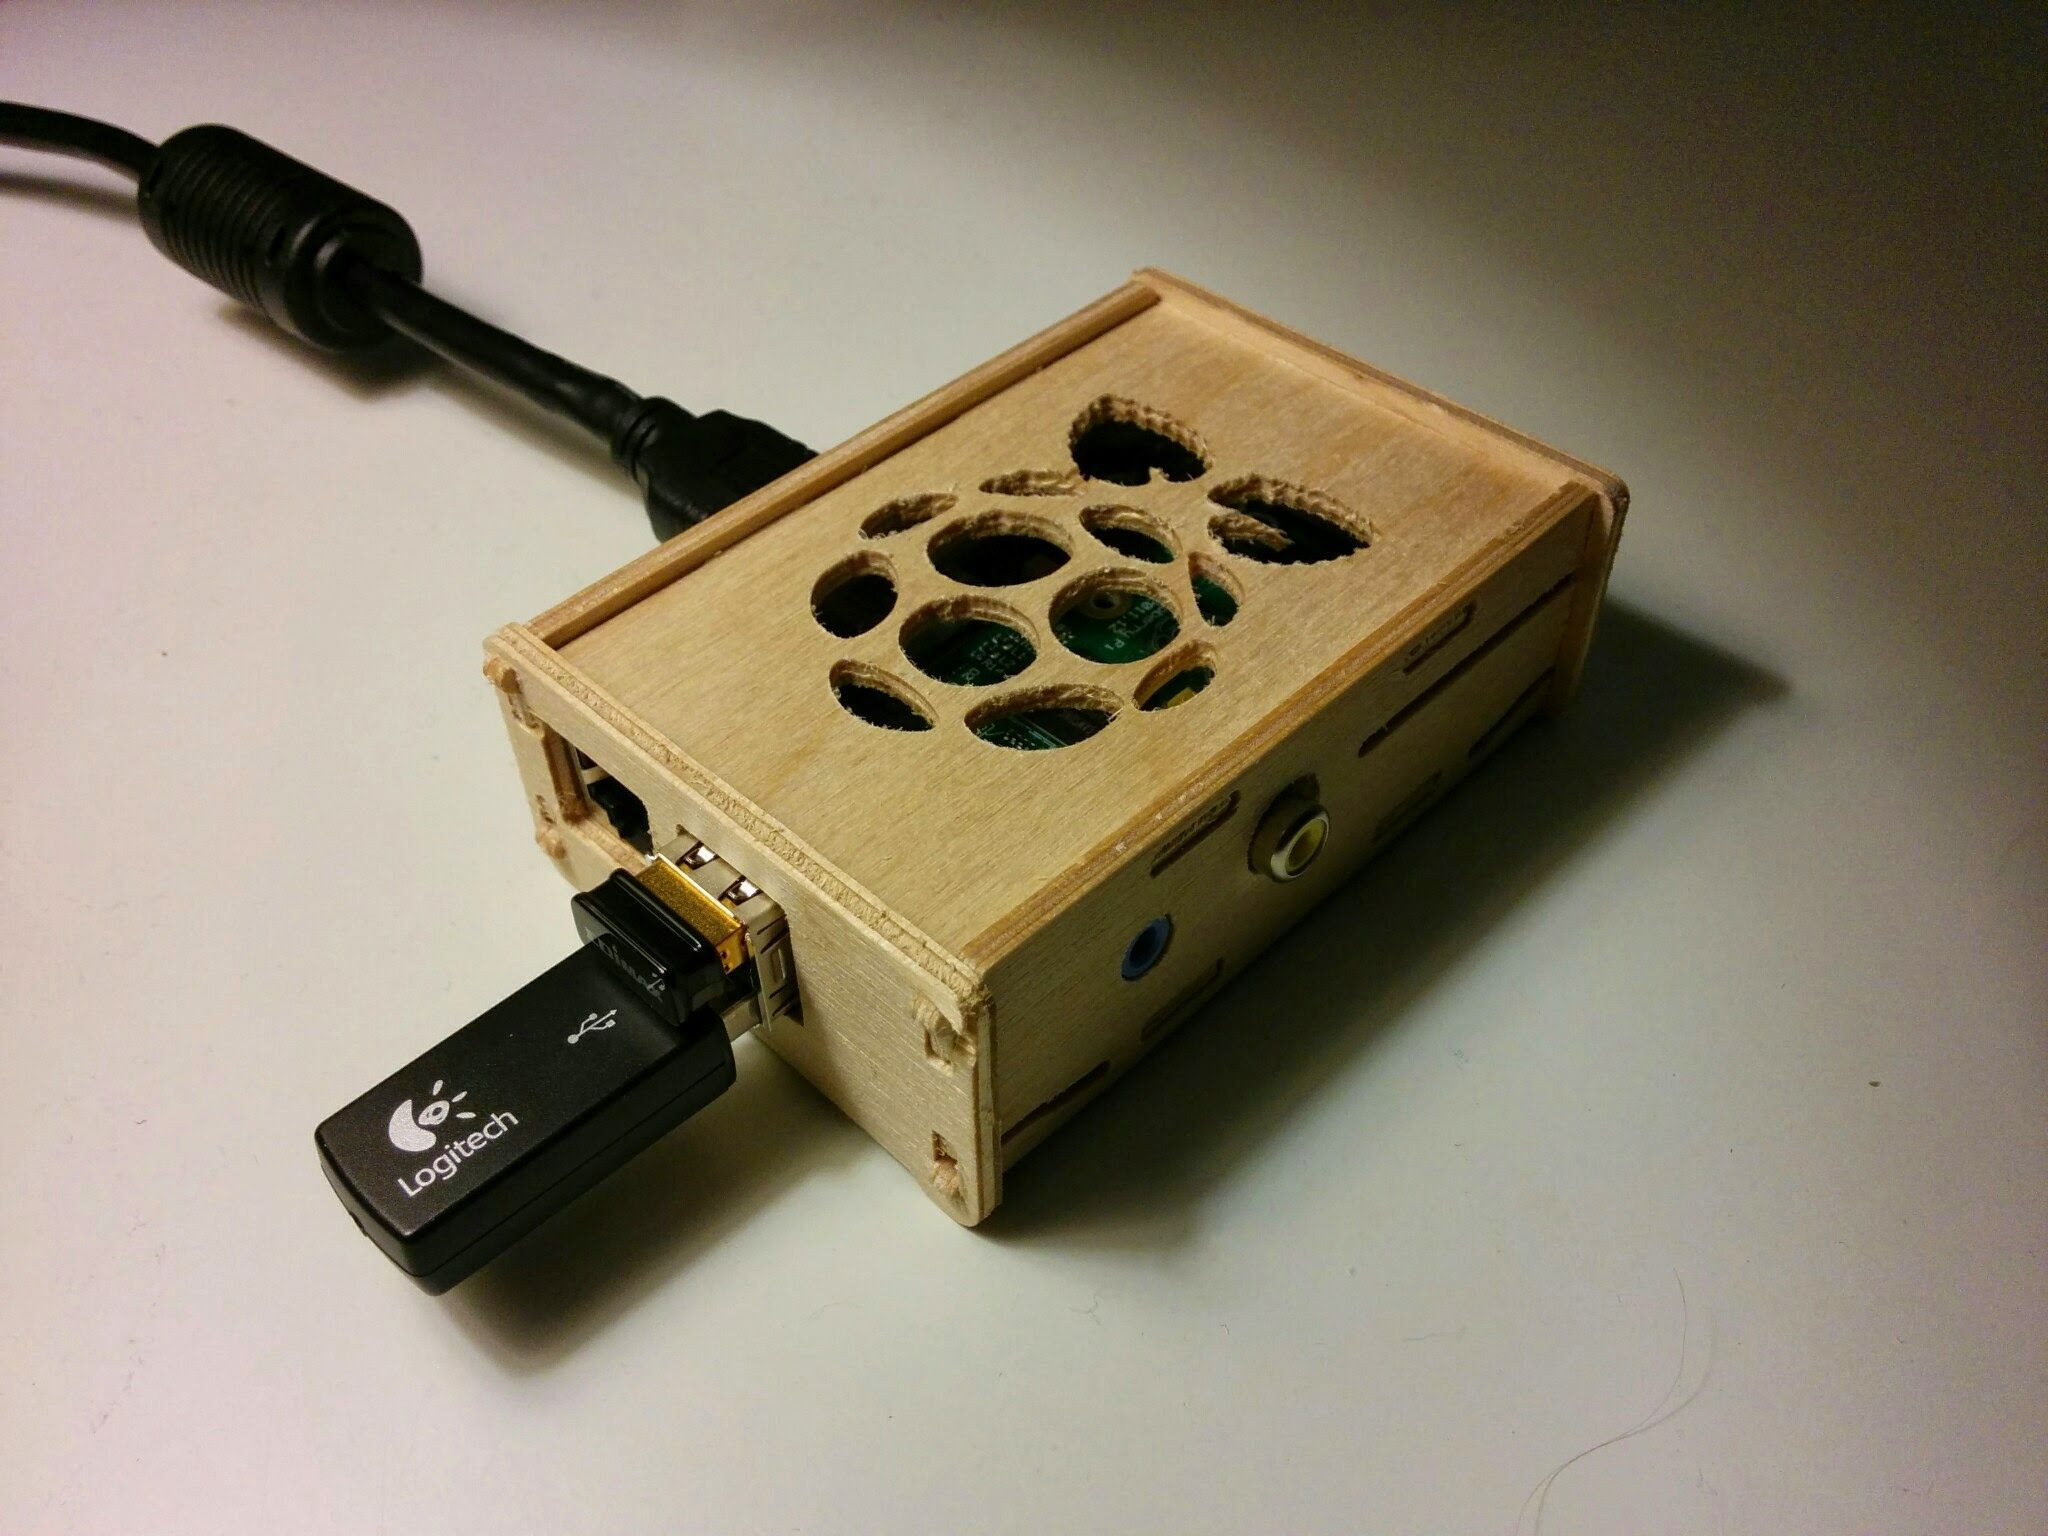 Best ideas about DIY Laser Cutter Plywood . Save or Pin RaspberryPi Plywood Case raspberryPi Pinterest Now.